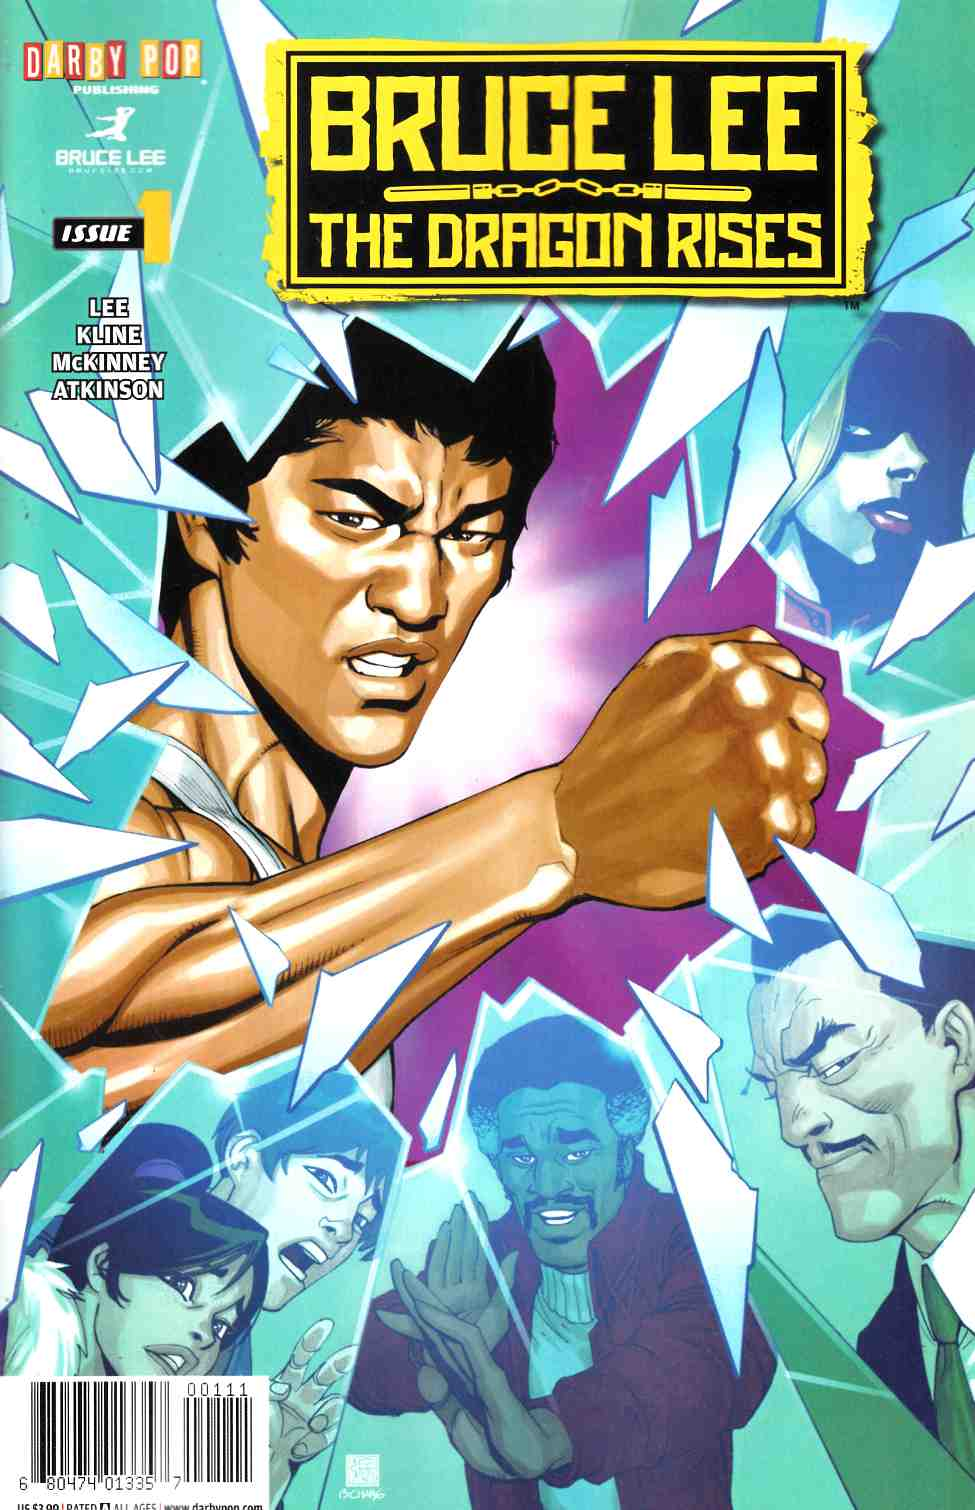 Bruce Lee Dragon Rises #1 Cover A [IDW Comic] THUMBNAIL